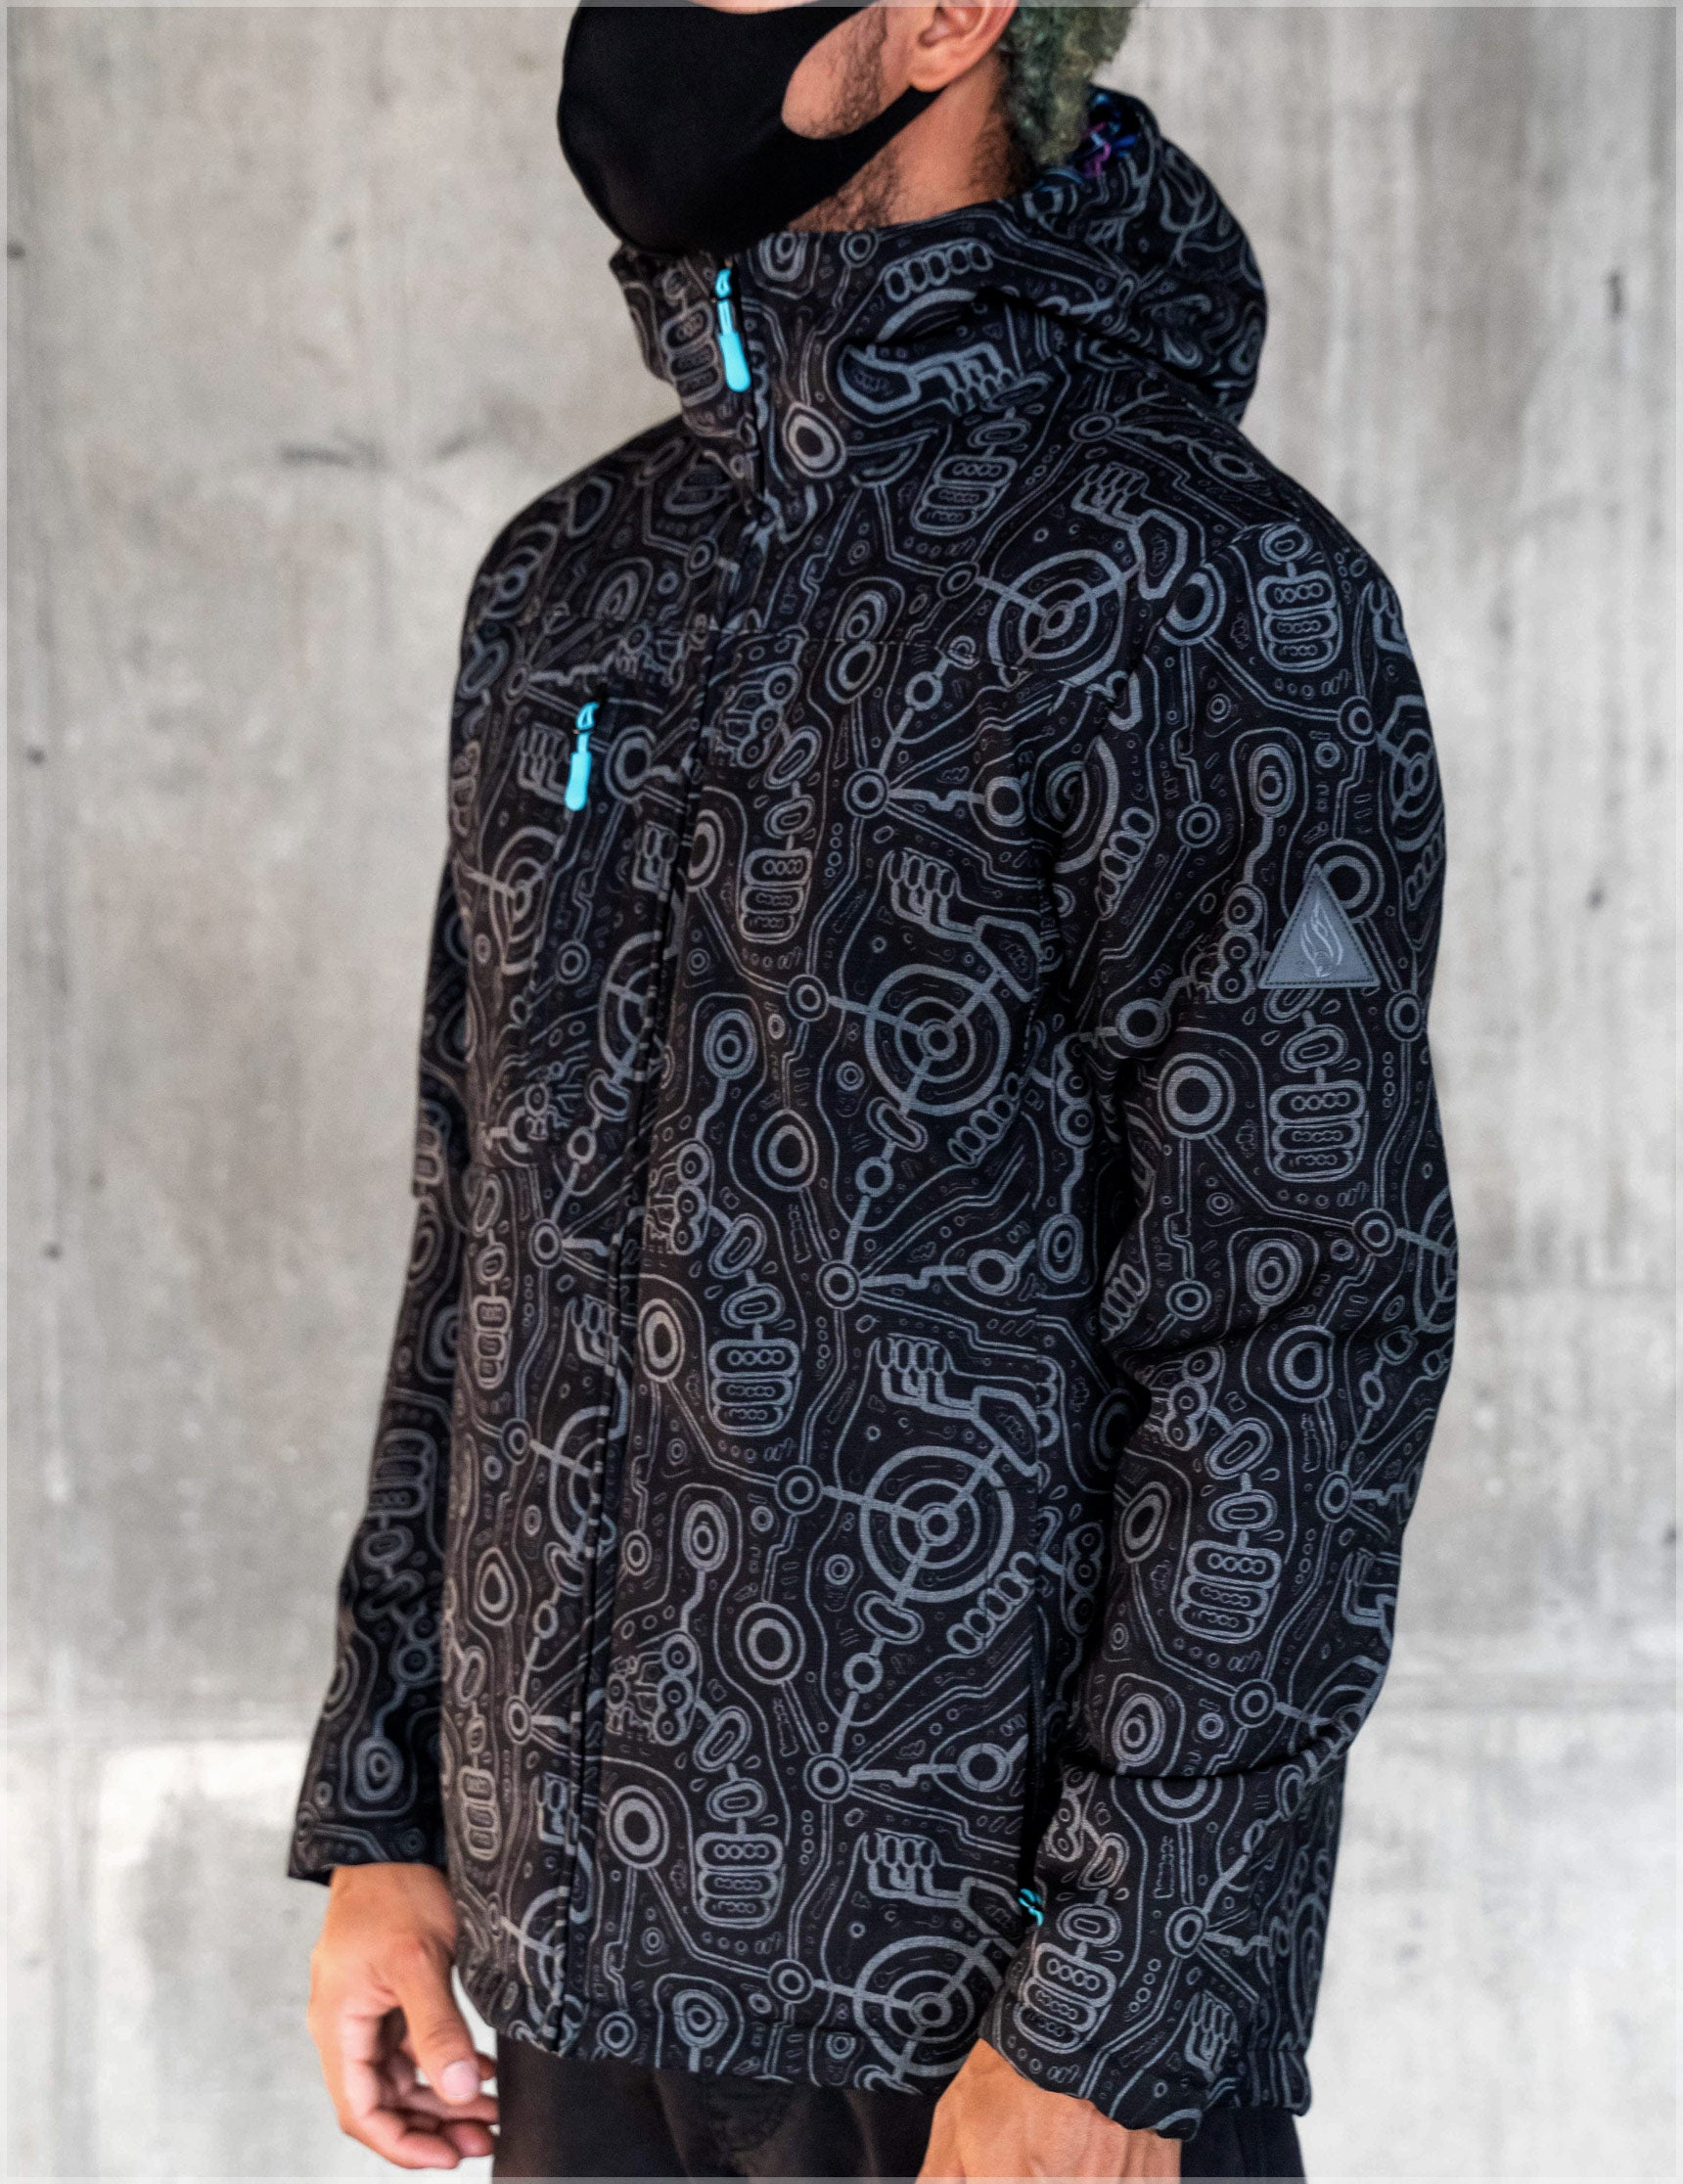 Syntax Obsidian Jacket by Ben Ridgway - Ships Dec 2020